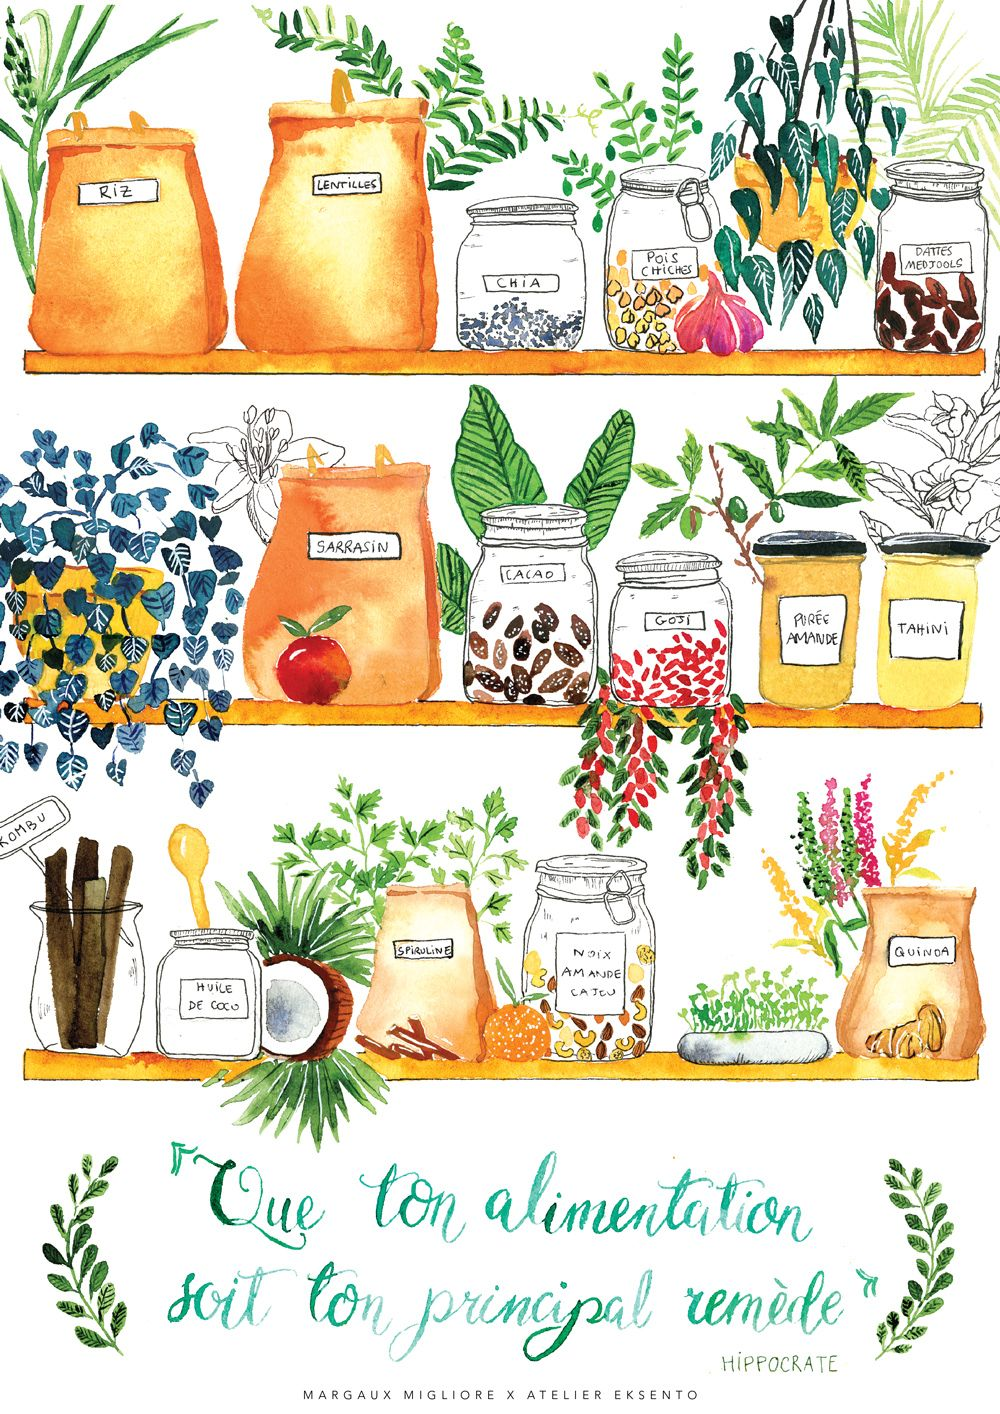 Affiche Poster La Naturopathie Illustree Aquarelle